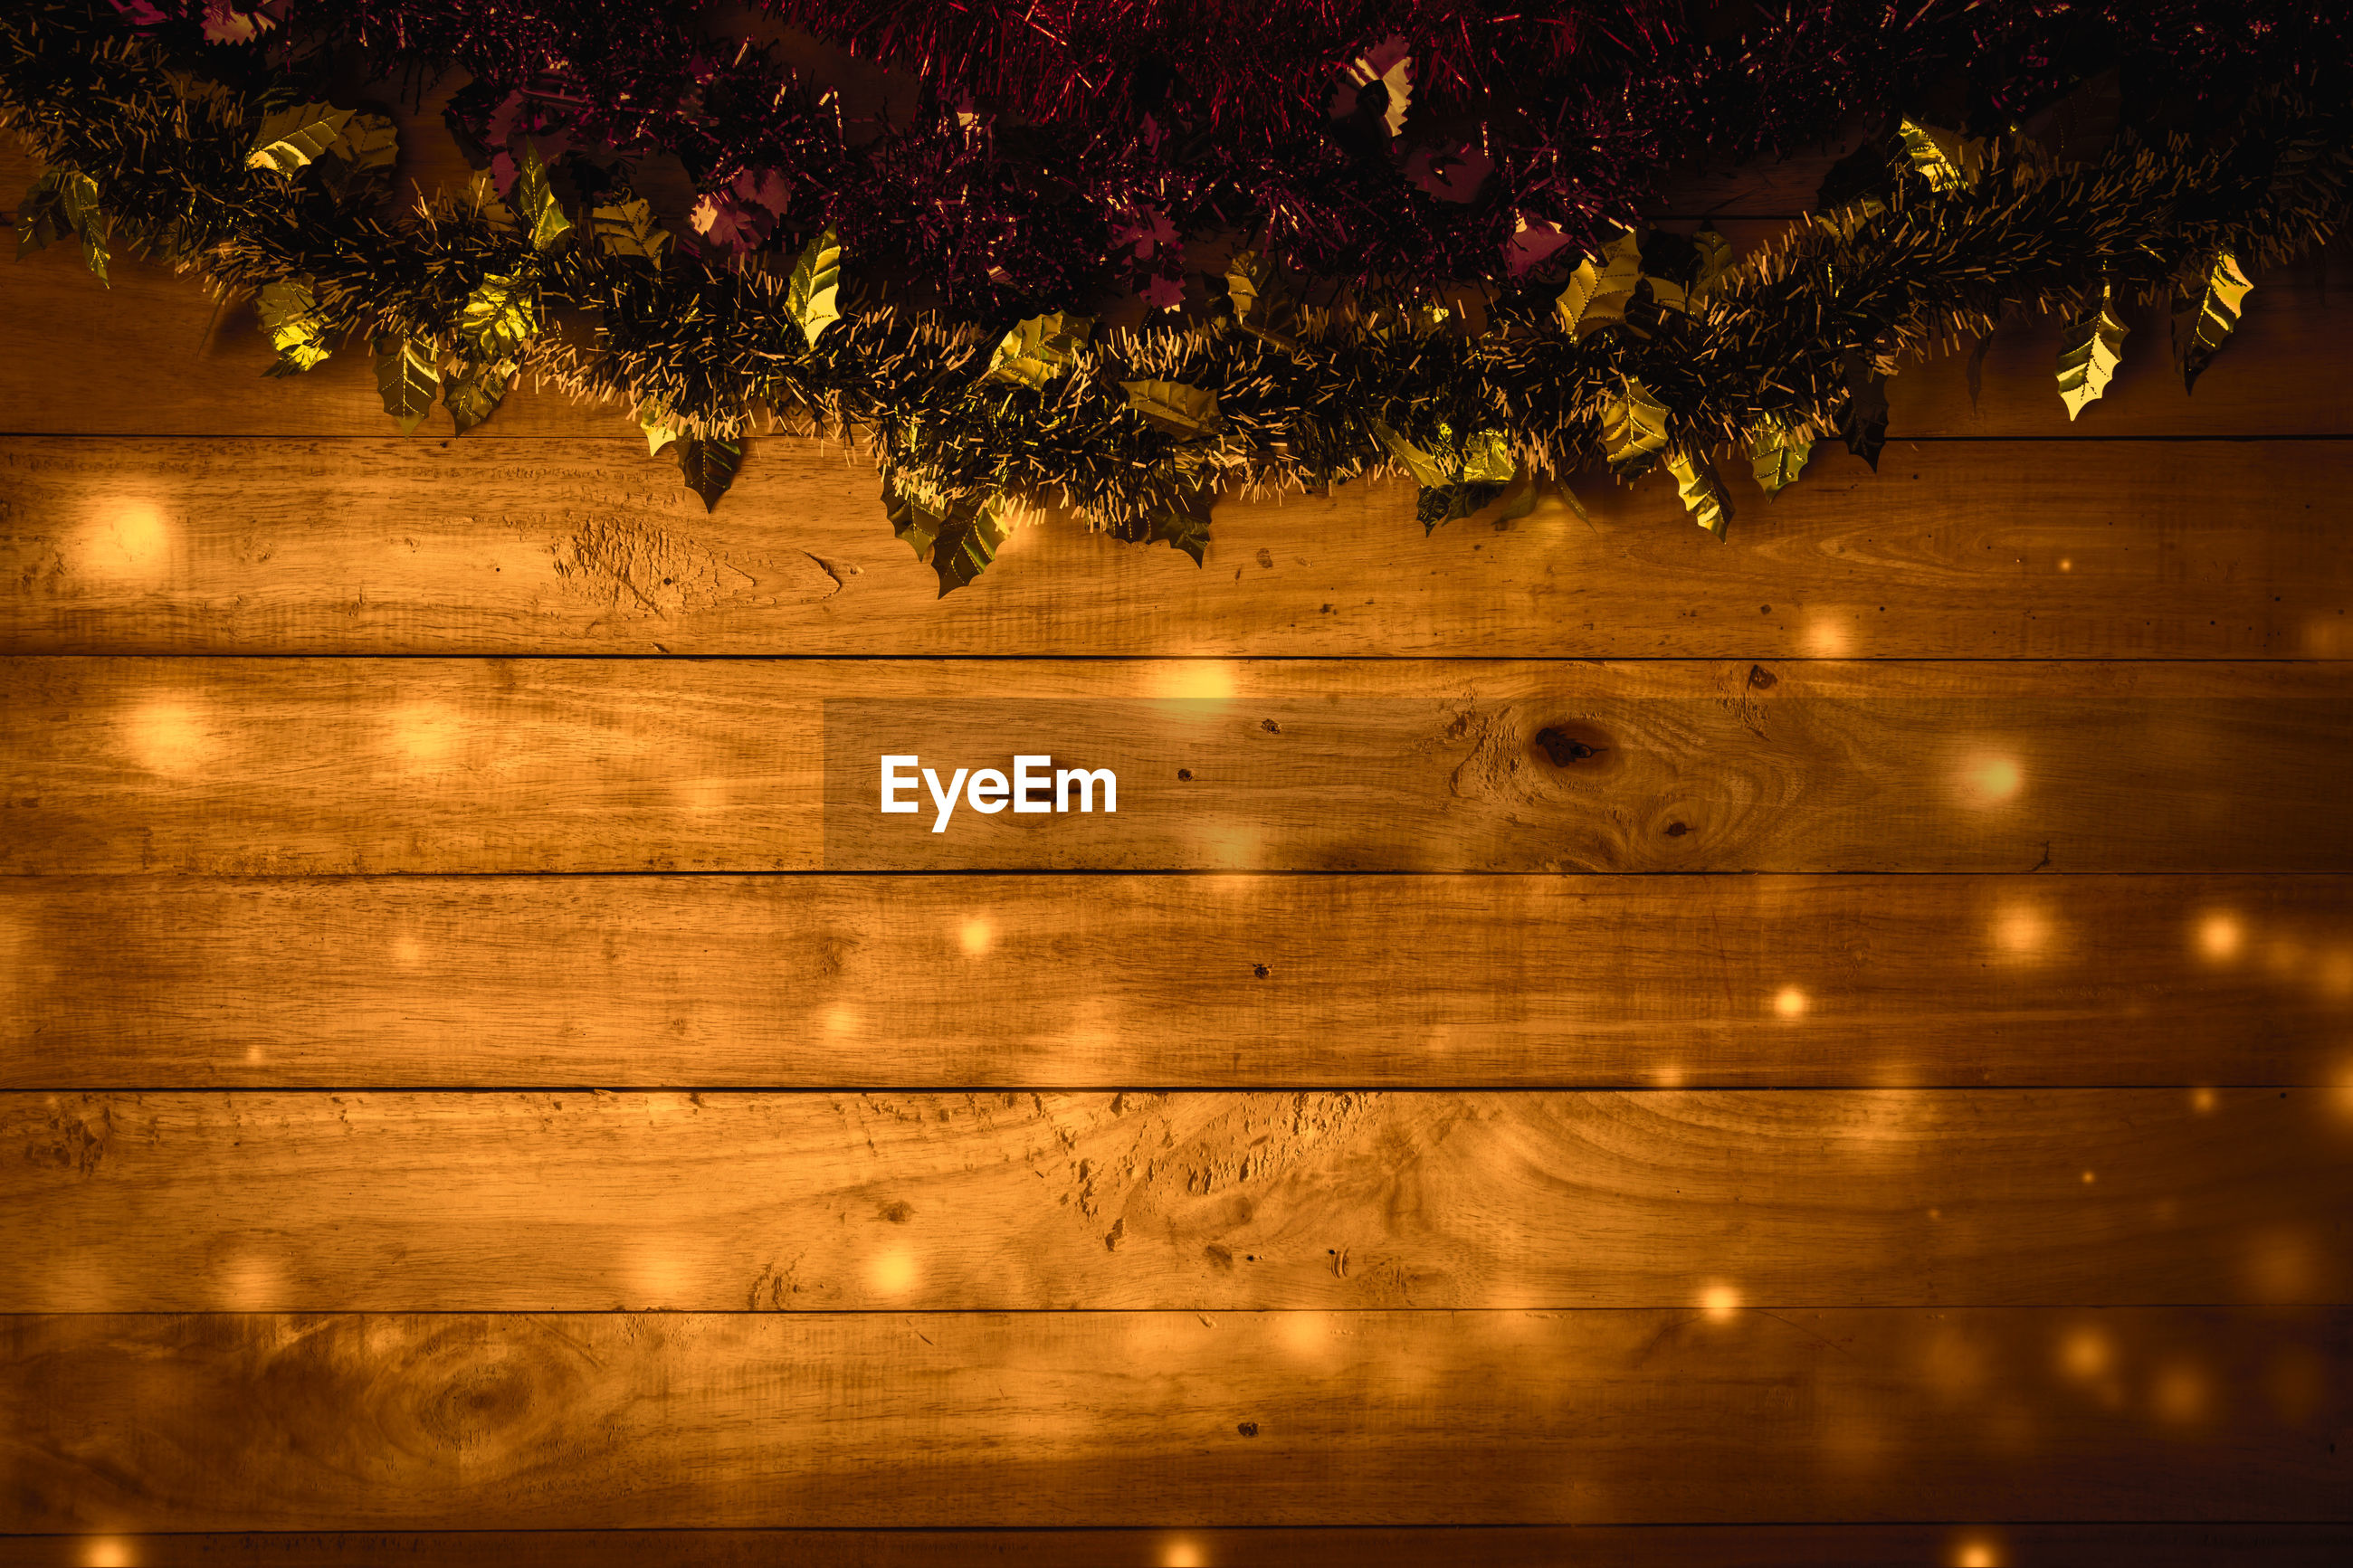 FULL FRAME SHOT OF WOODEN WALL WITH TREE